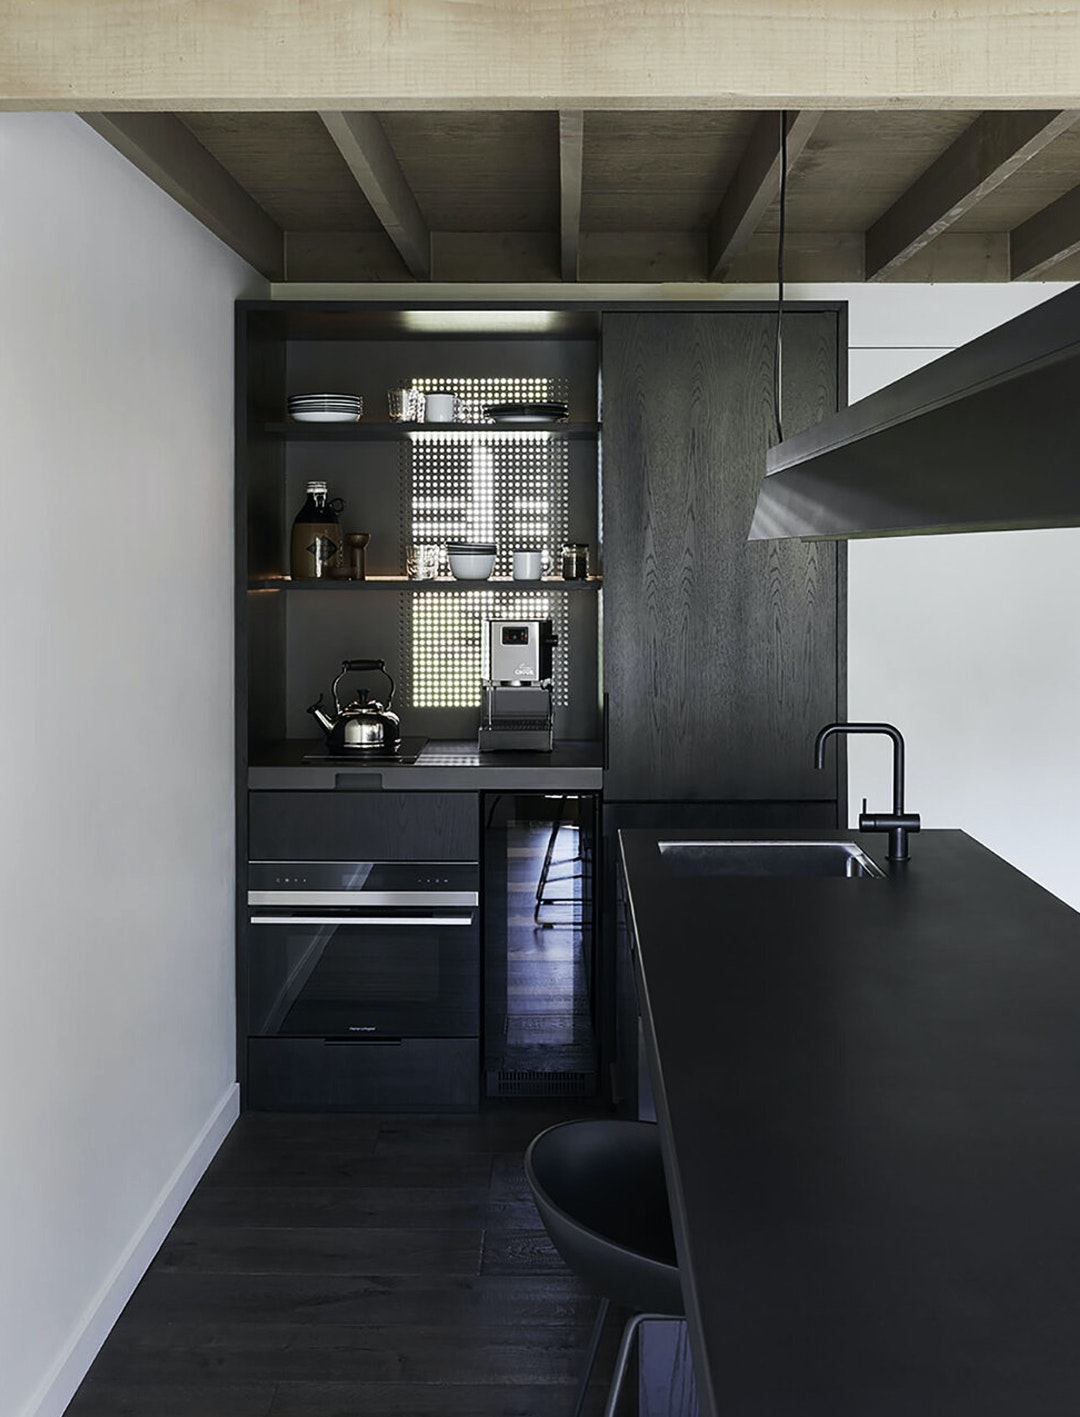 inside kitchen of cedar cabin decked out in all black trimmings